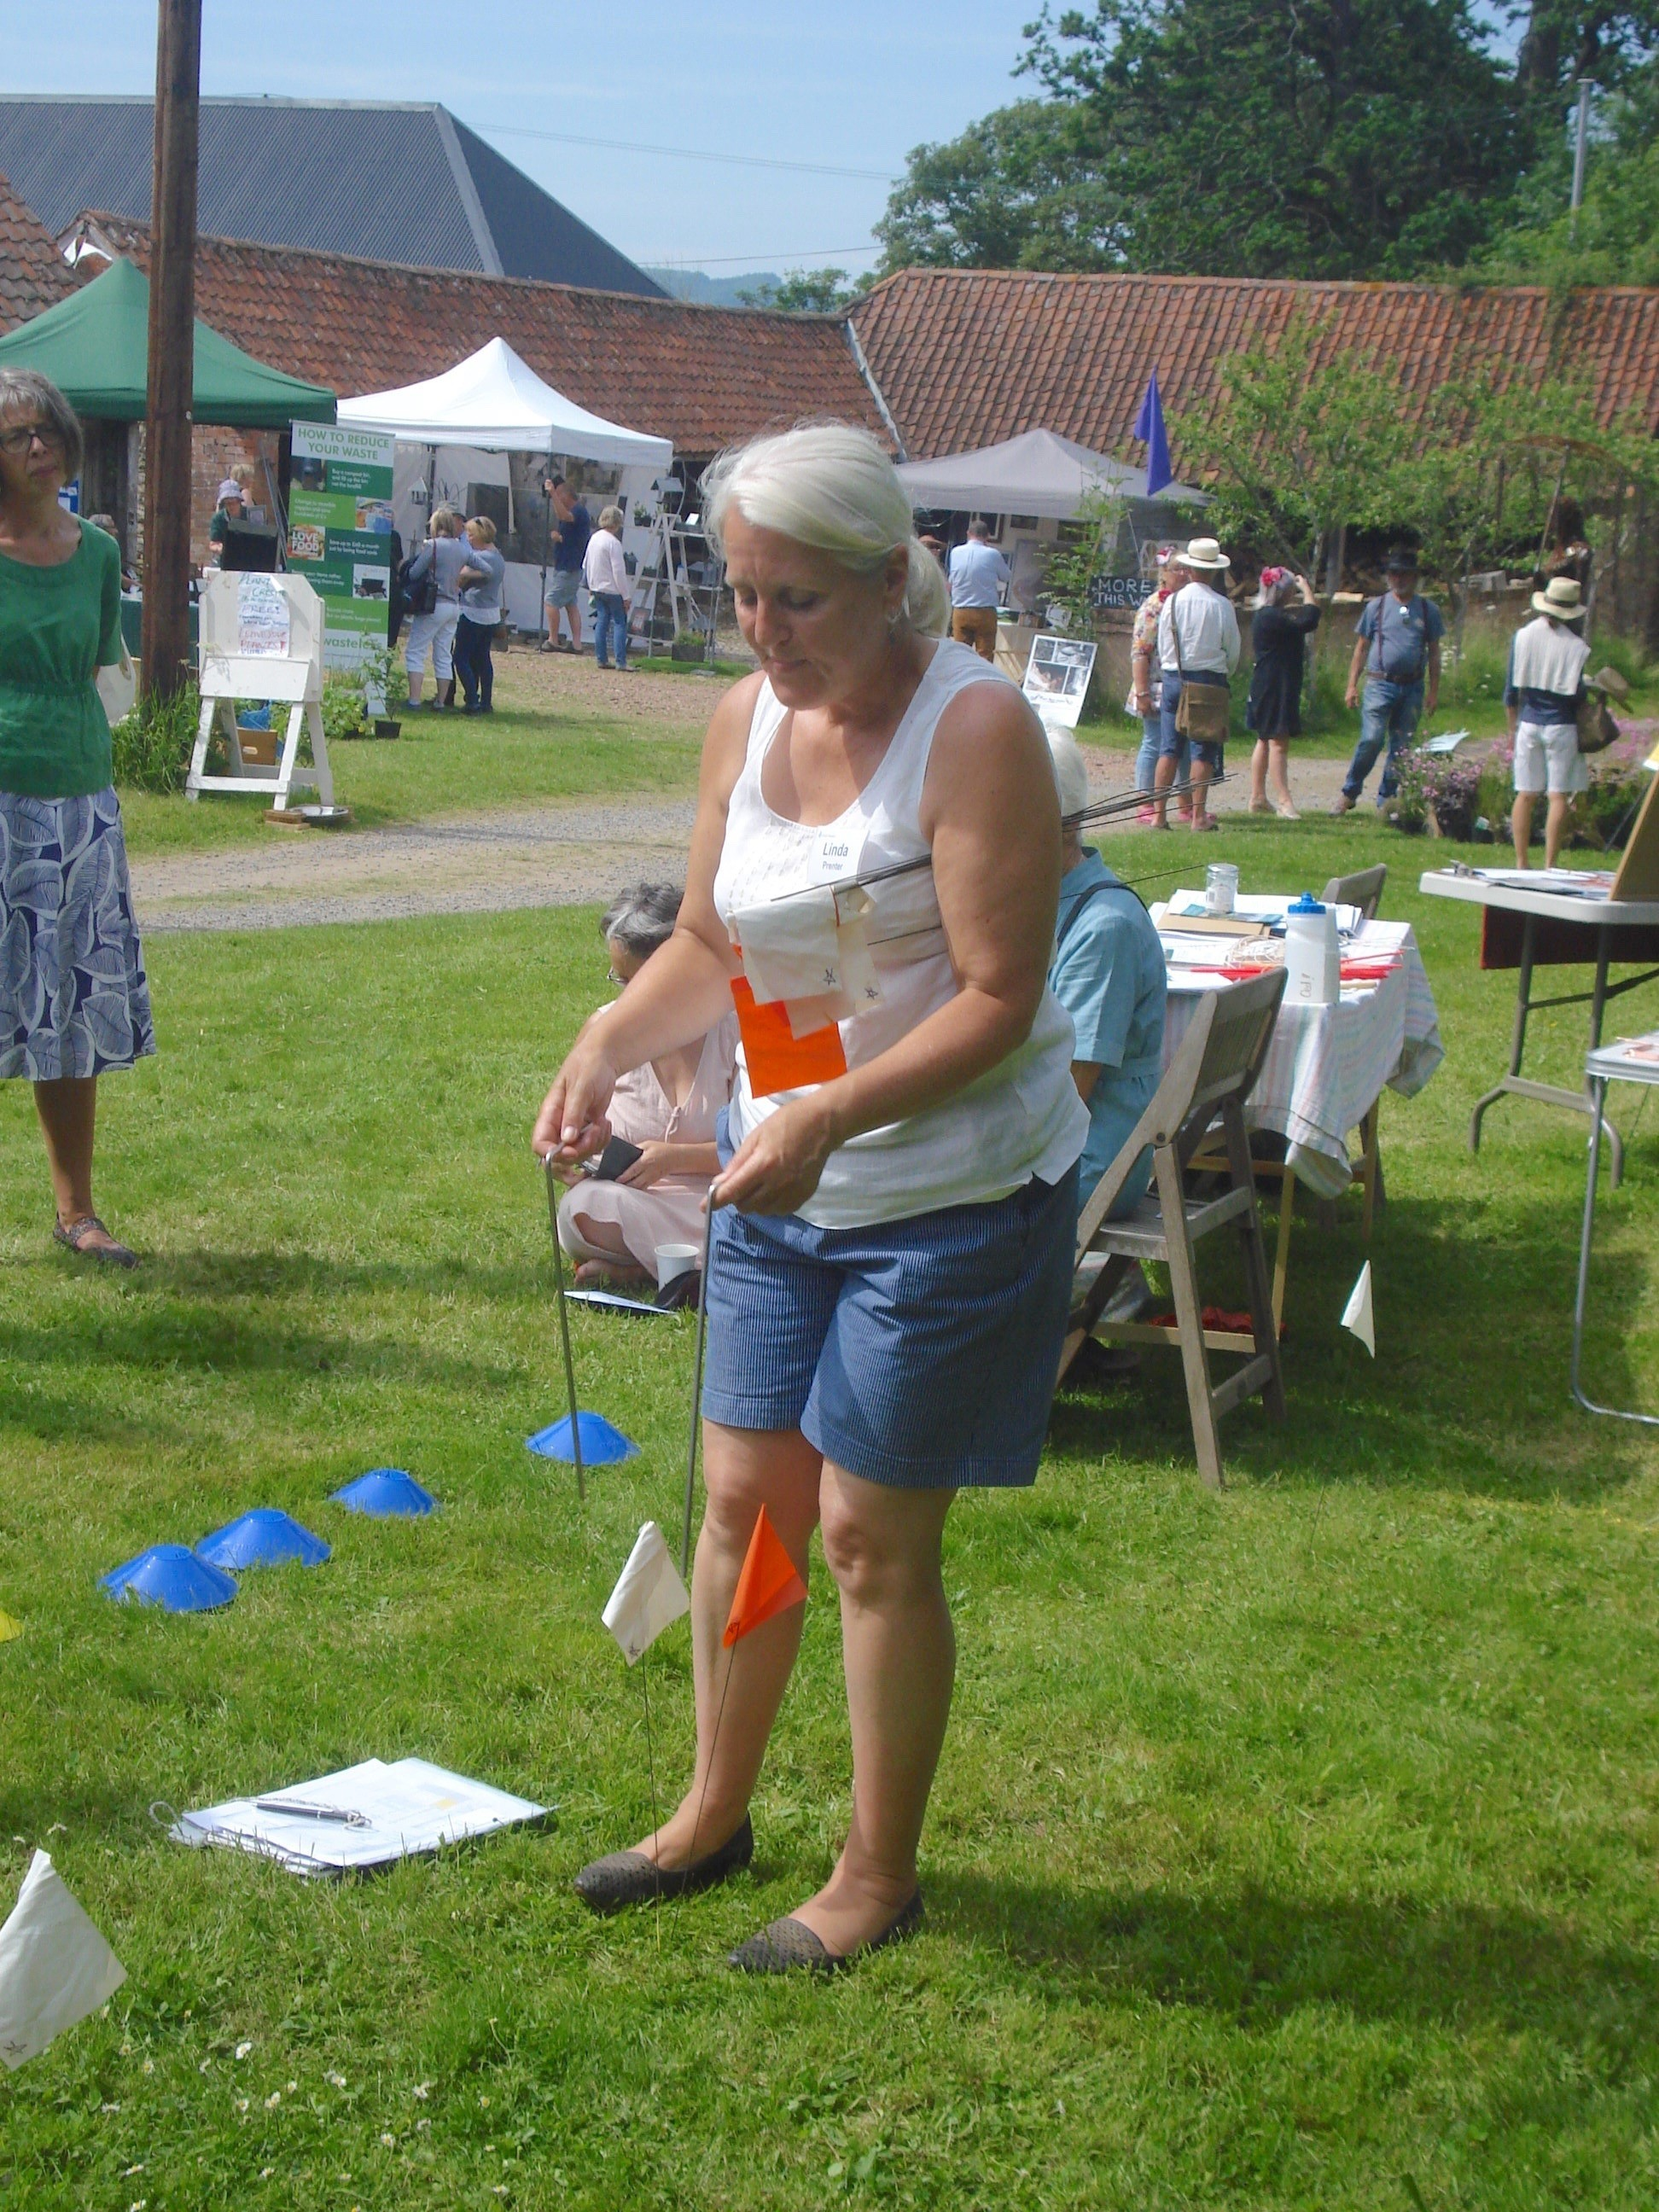 Commercial water dowser, Linda Prenter, demonstrates the use of flags to mark underground water lines at Hellens Garden Festival